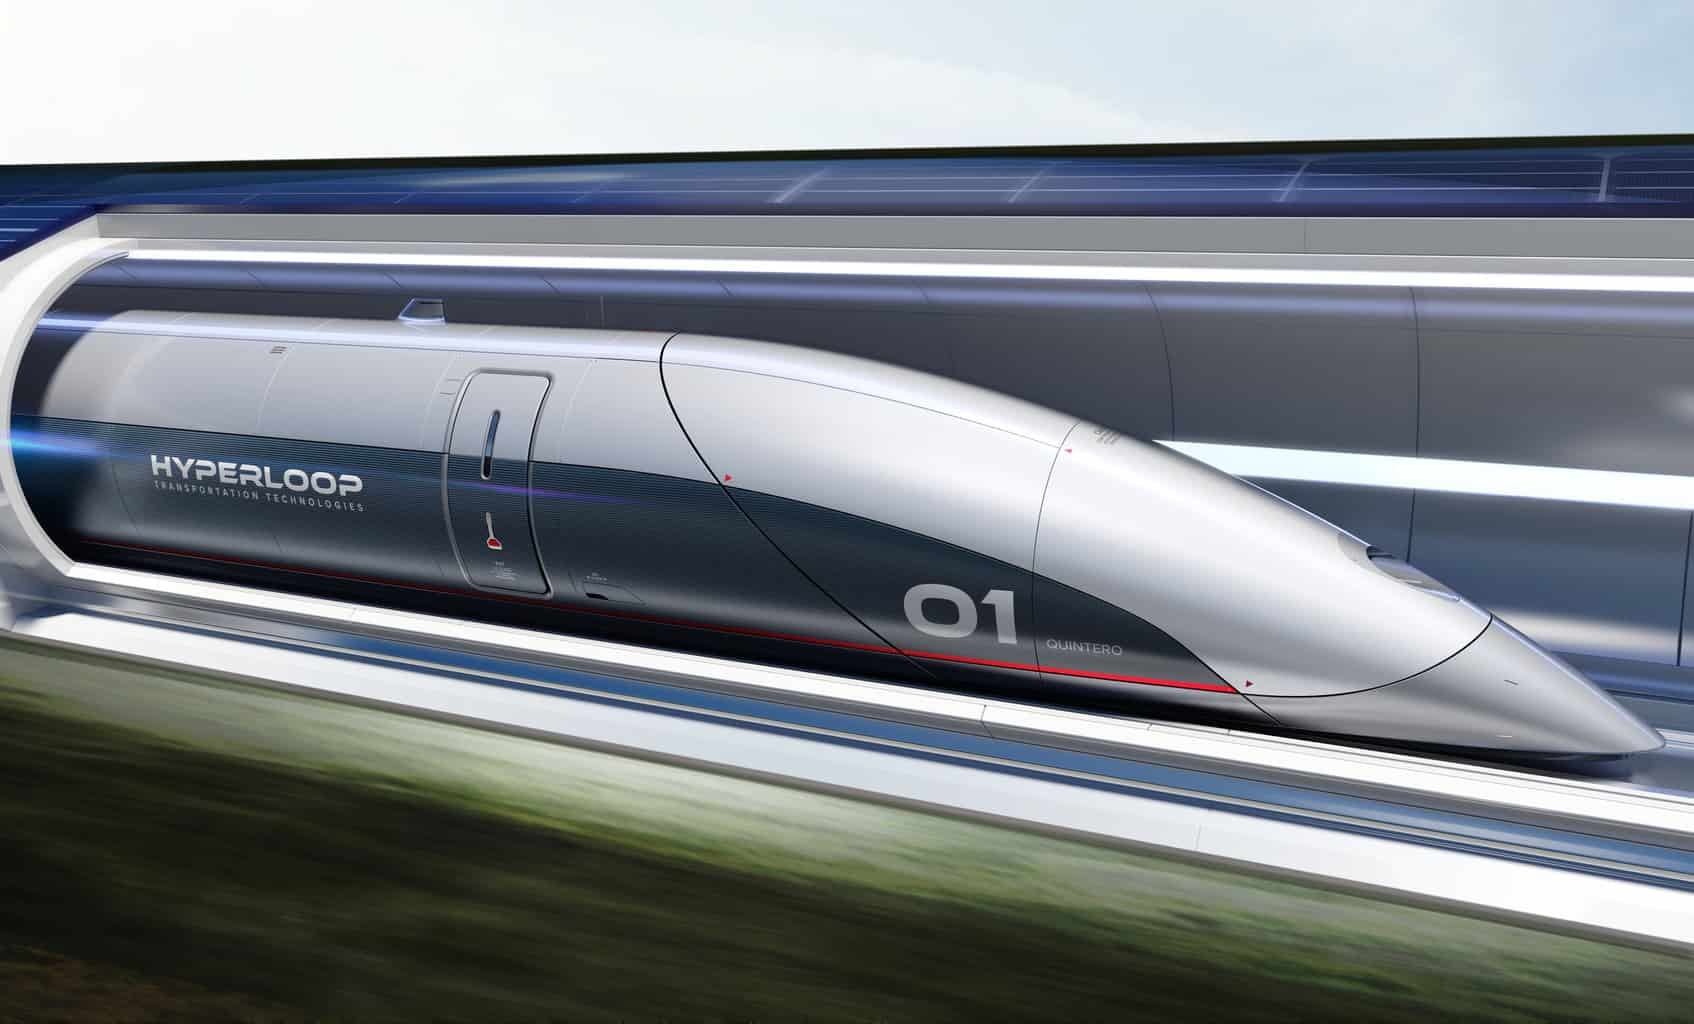 Photo of Apple Inc. could be decisive bringing hyperloop to the state of California